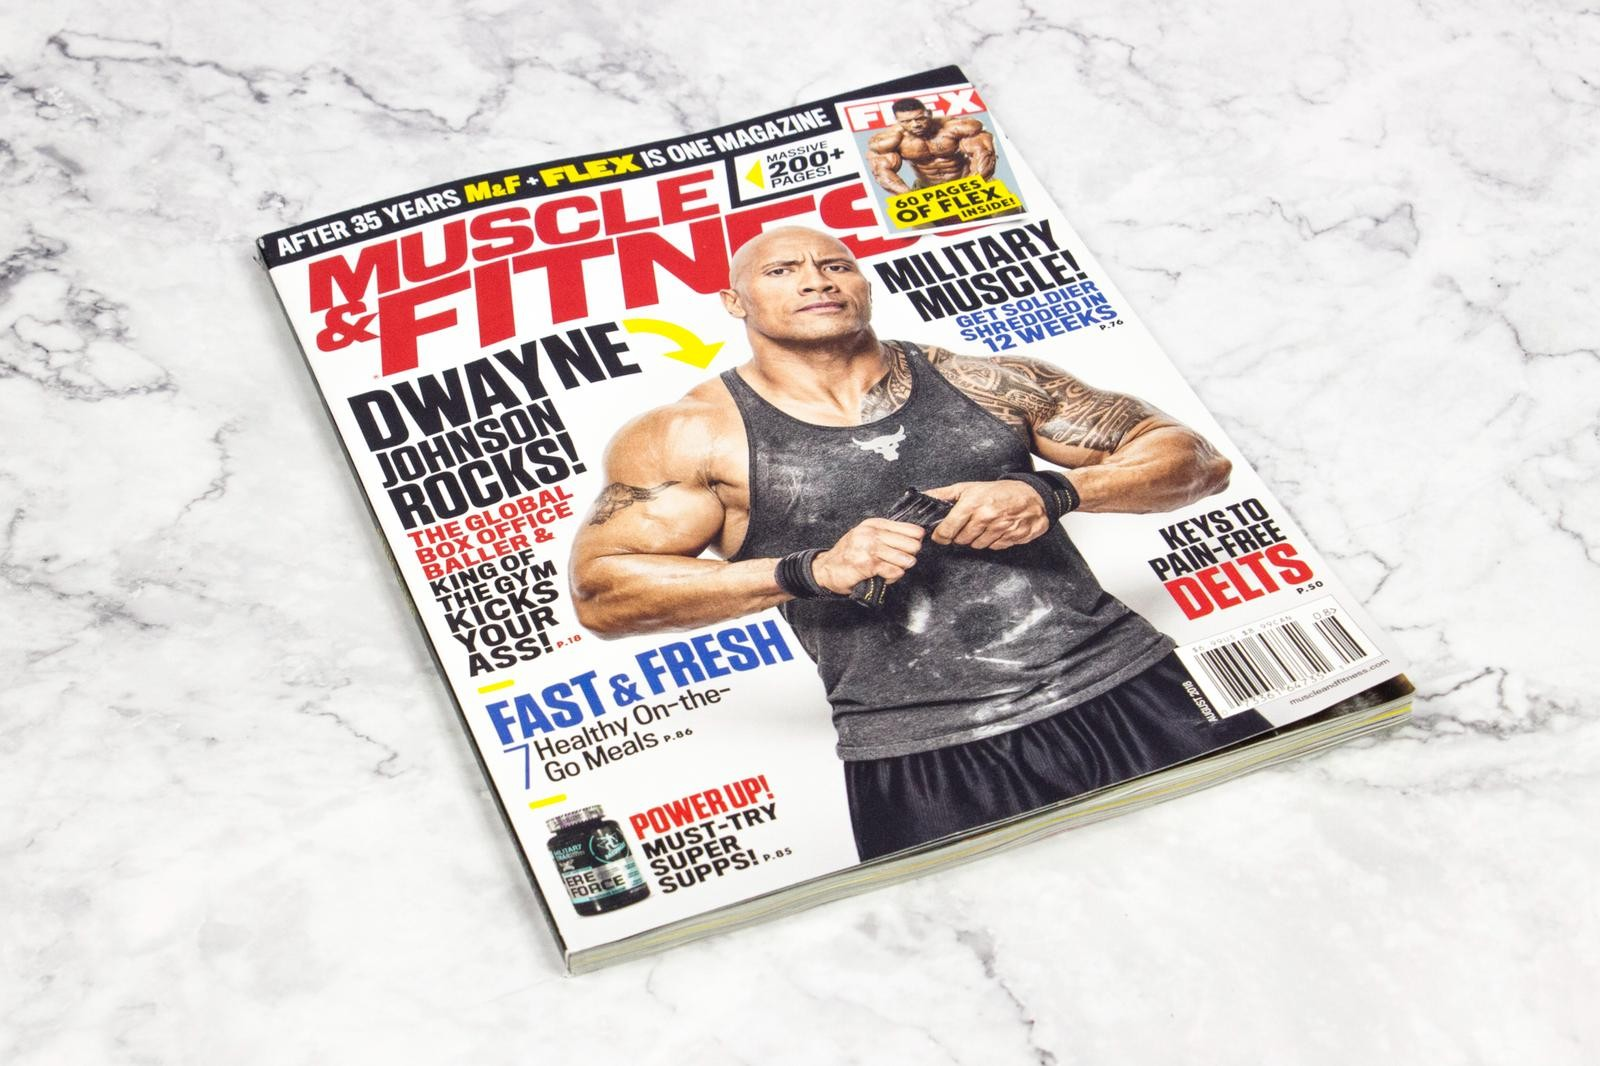 Military Trail Featured on Cover of Muscle & Fitness